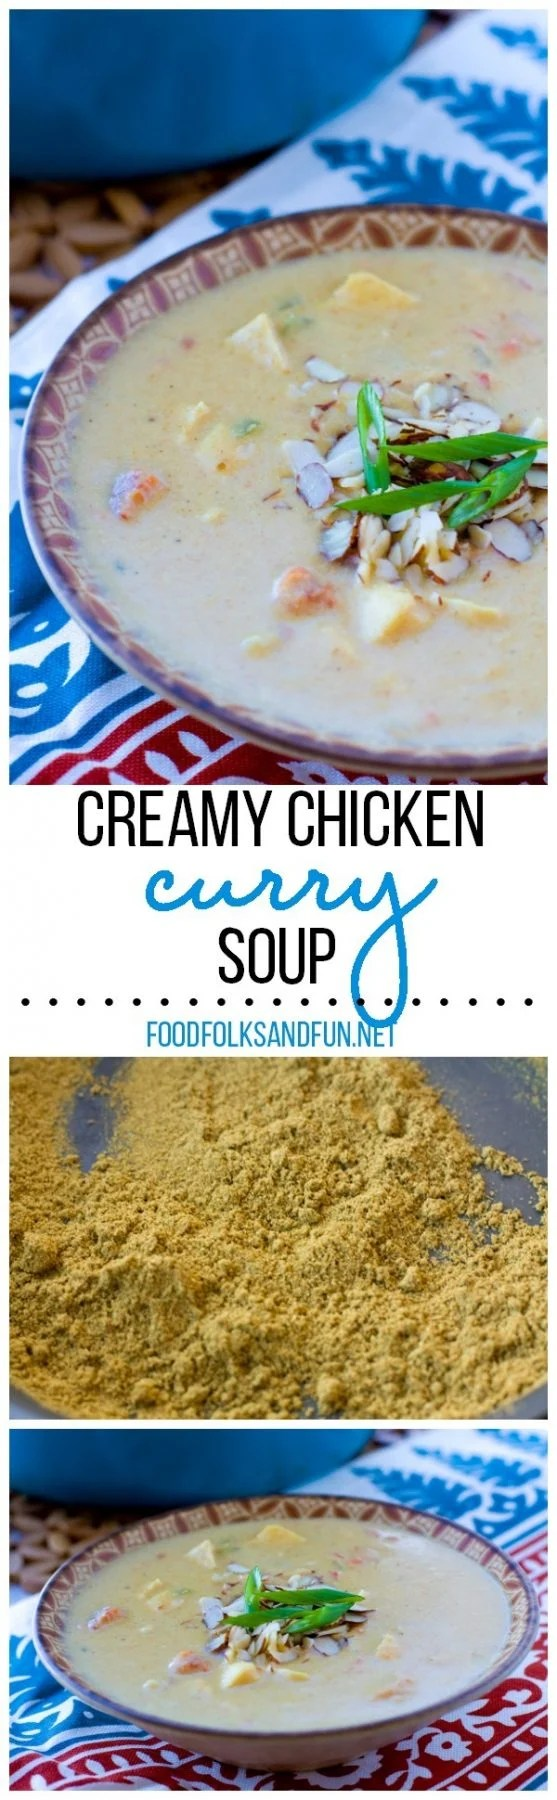 Creamy Chicken Curry Soup